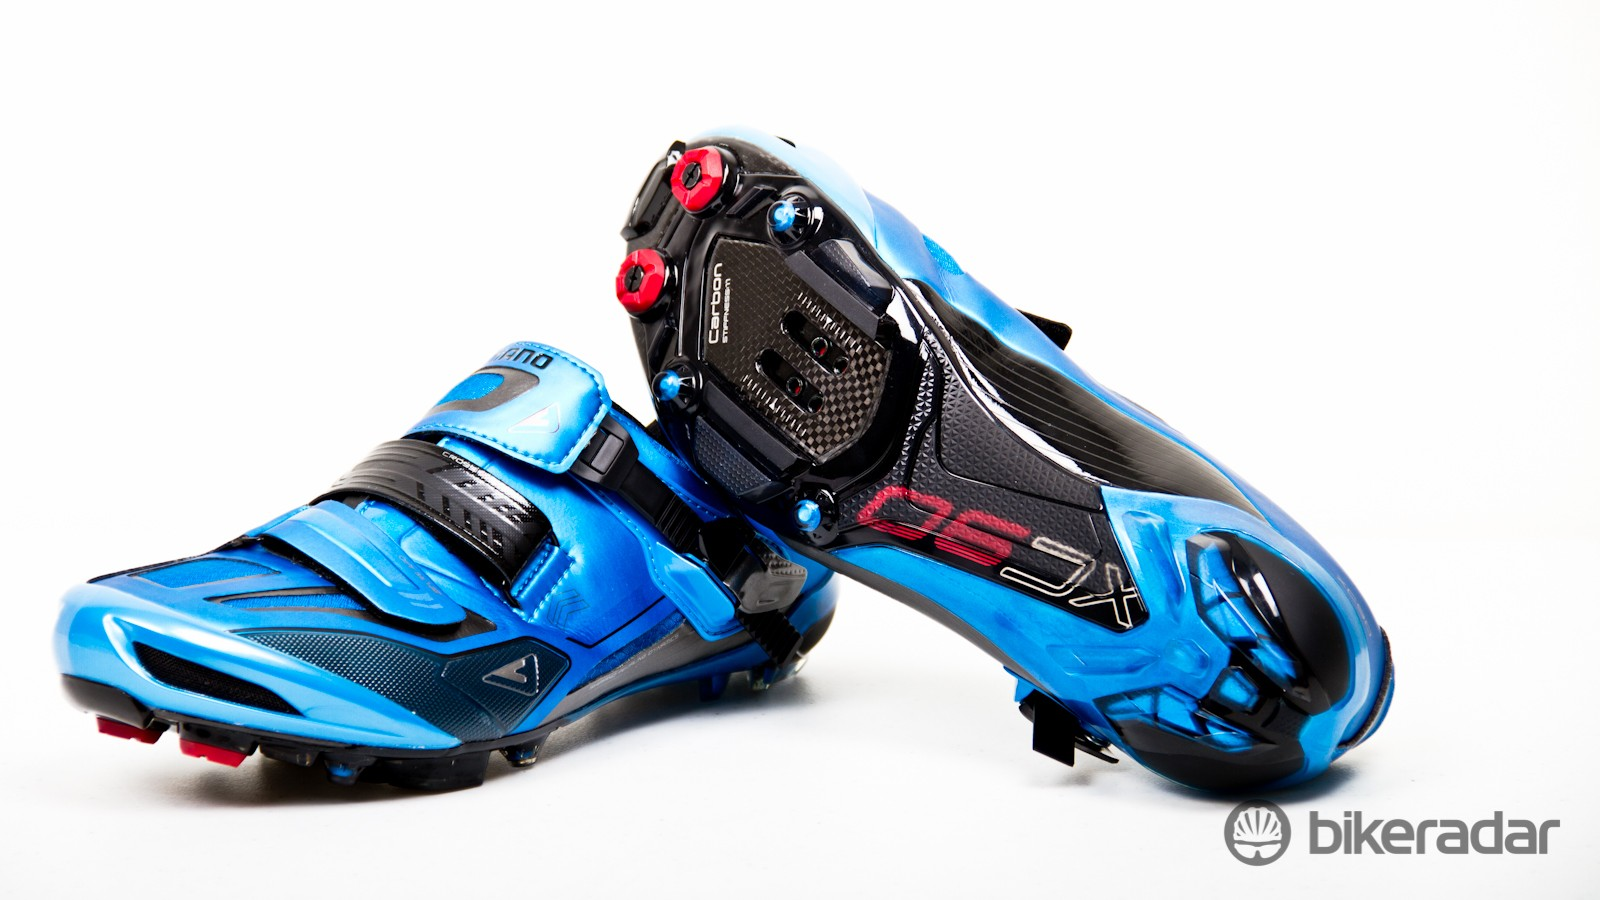 Shimano's XC90 mountain bike shoes sit at the top of the Japenese brand's off-road range